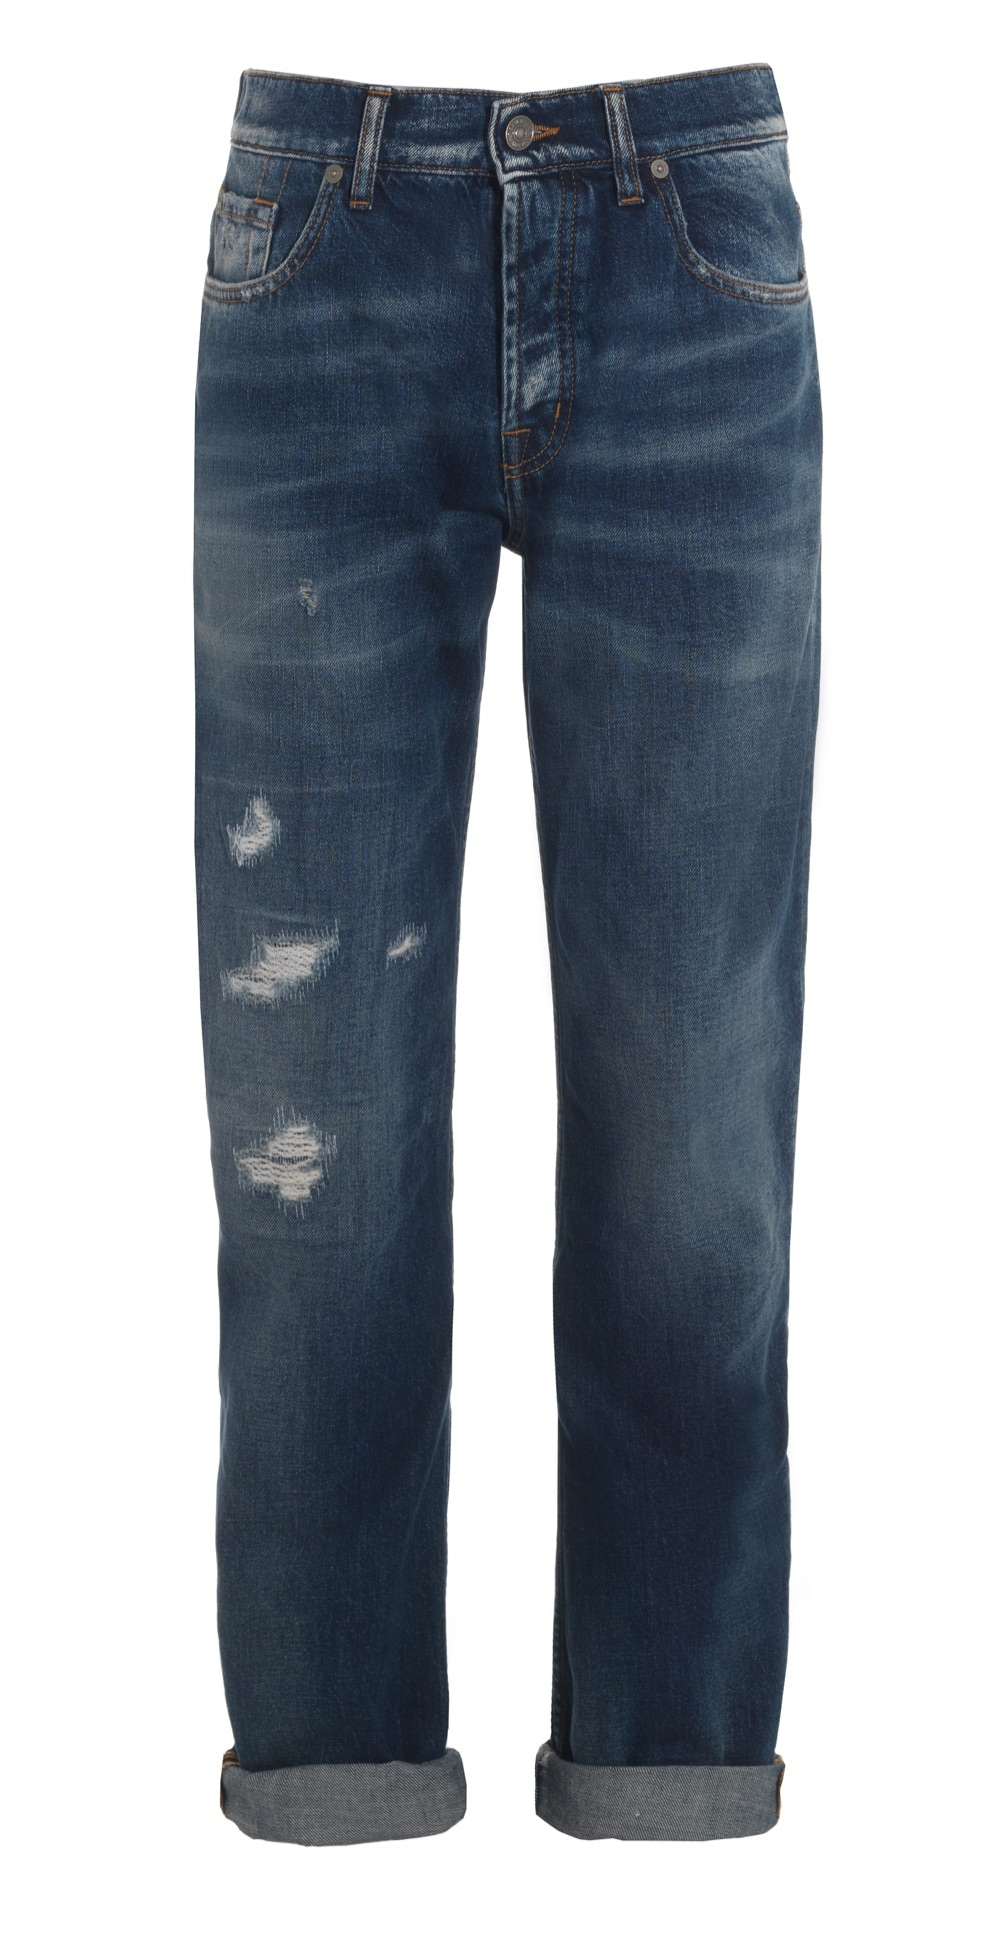 jeans_7